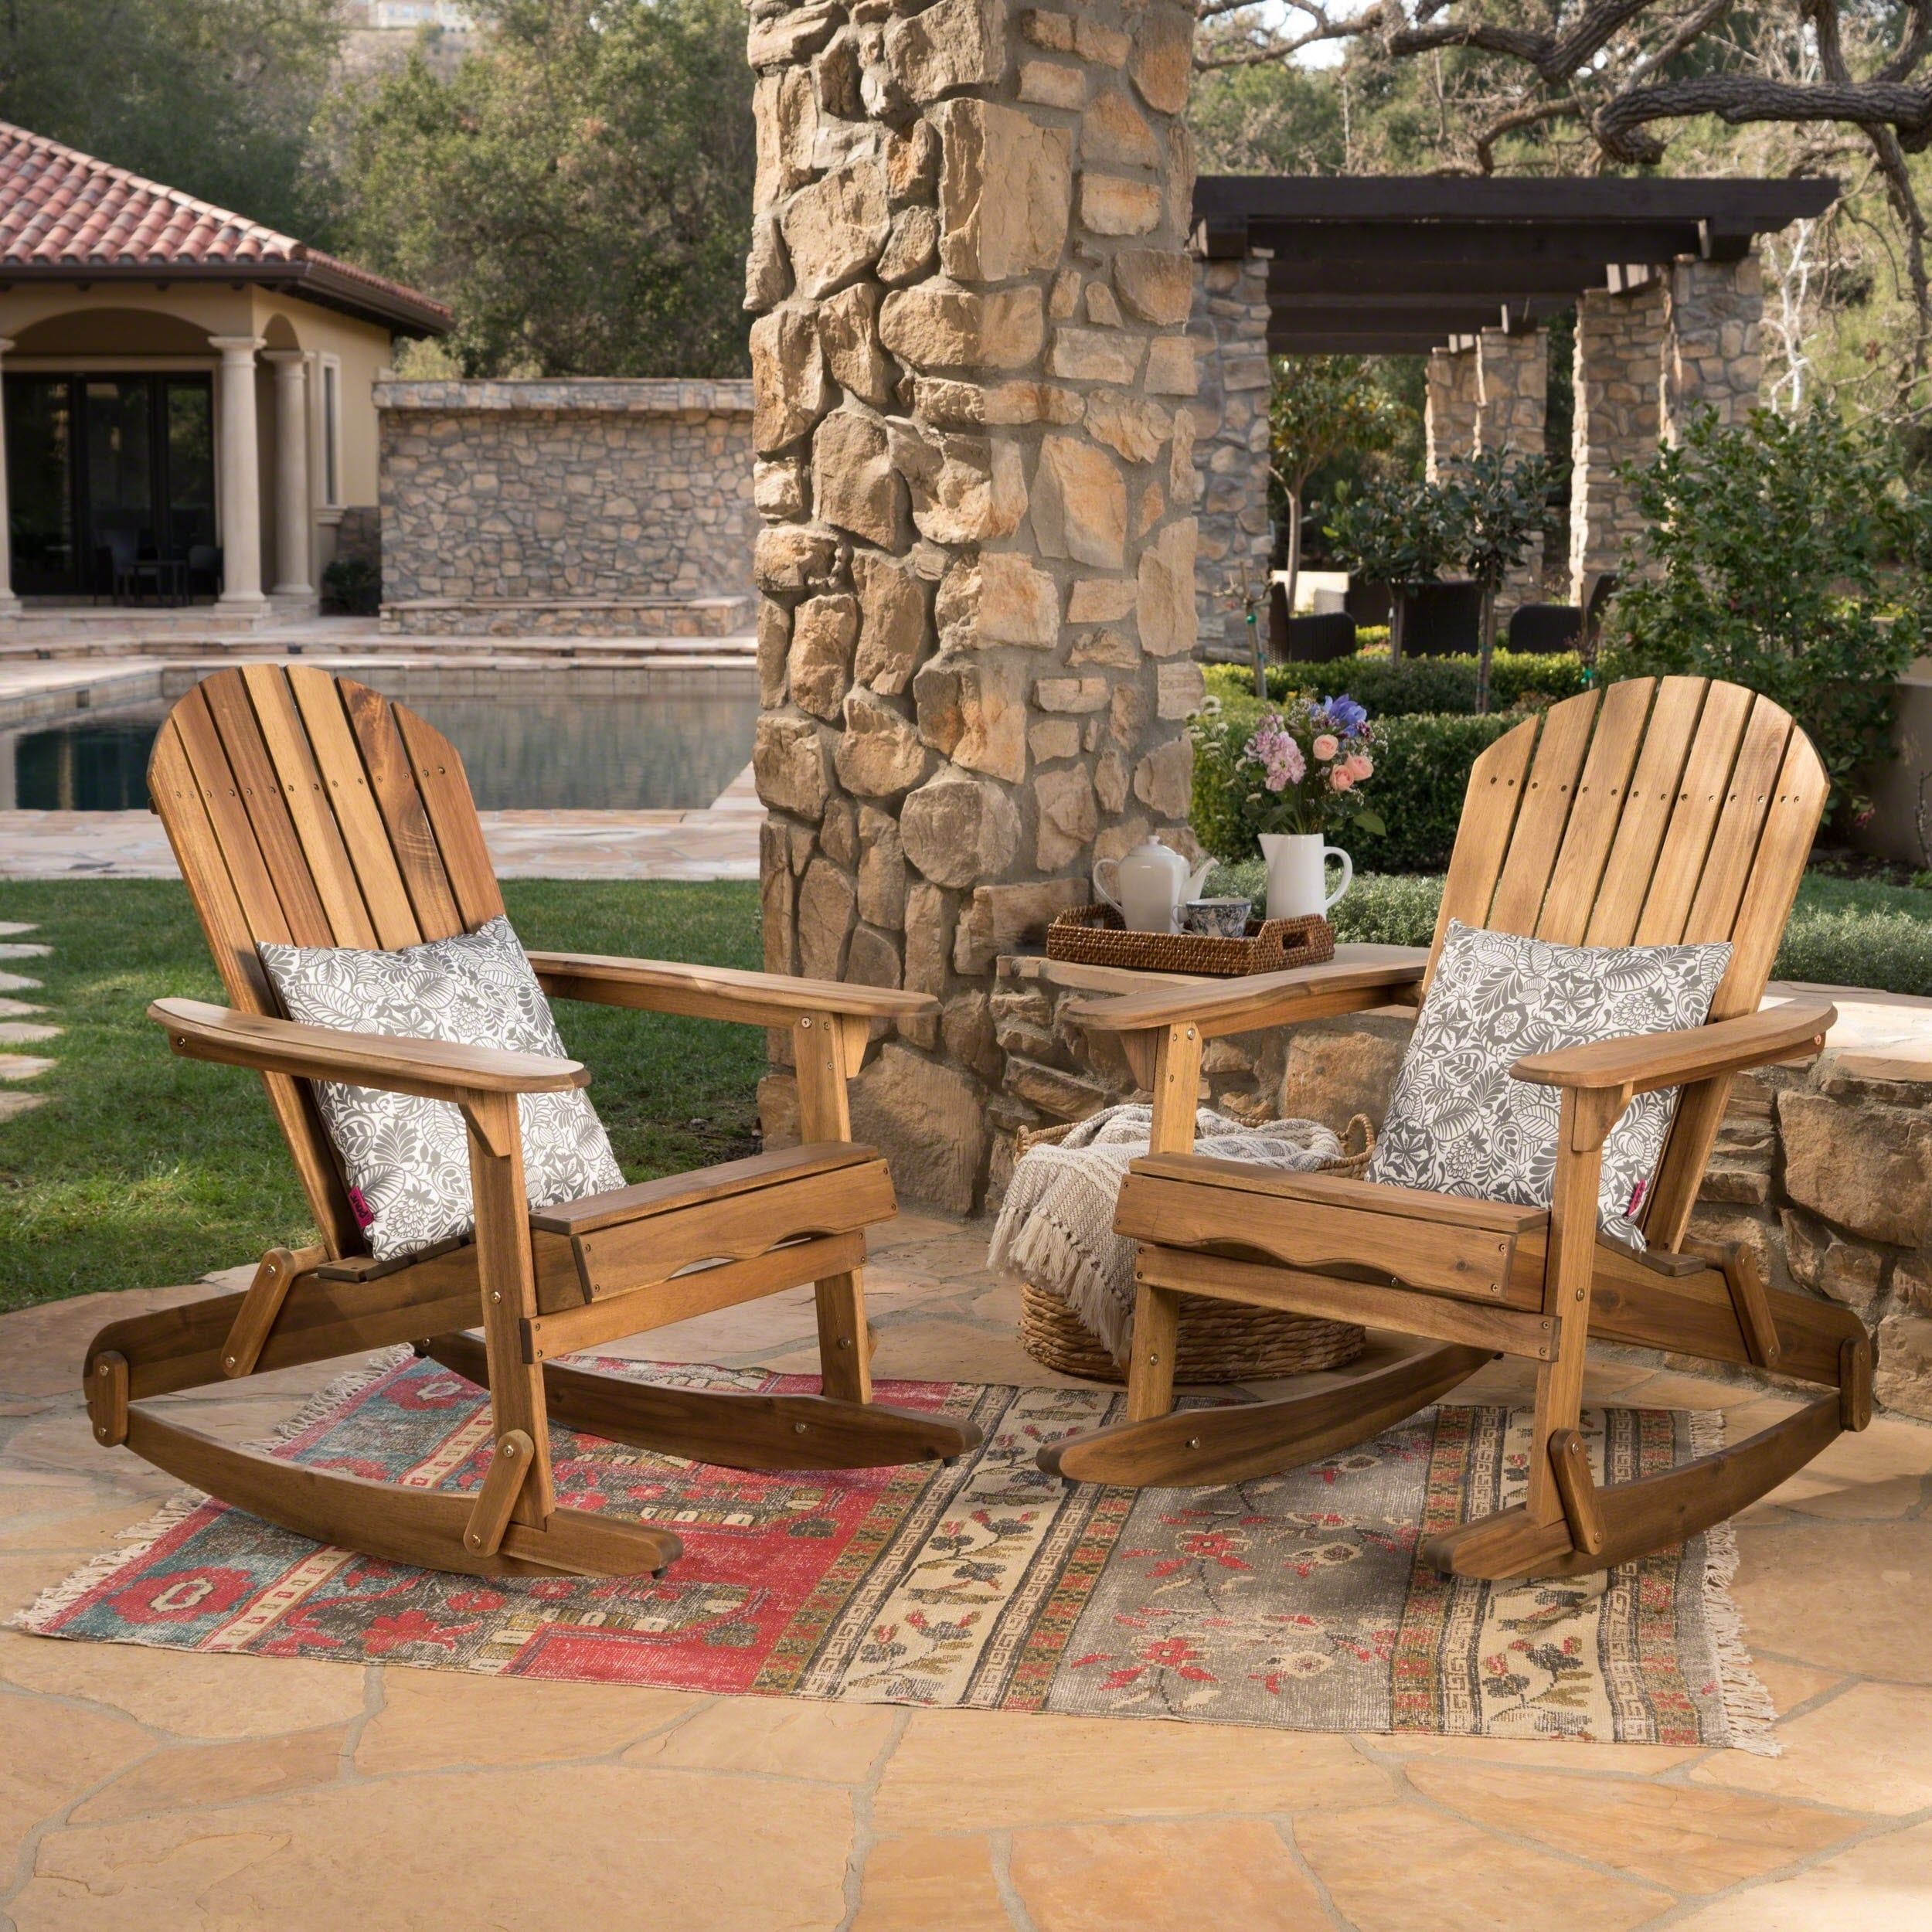 Outdoor Rocking Chair Set Malibu Outdoor Adirondack Rocking Chair Set Of 2 By Christopher Knight Home